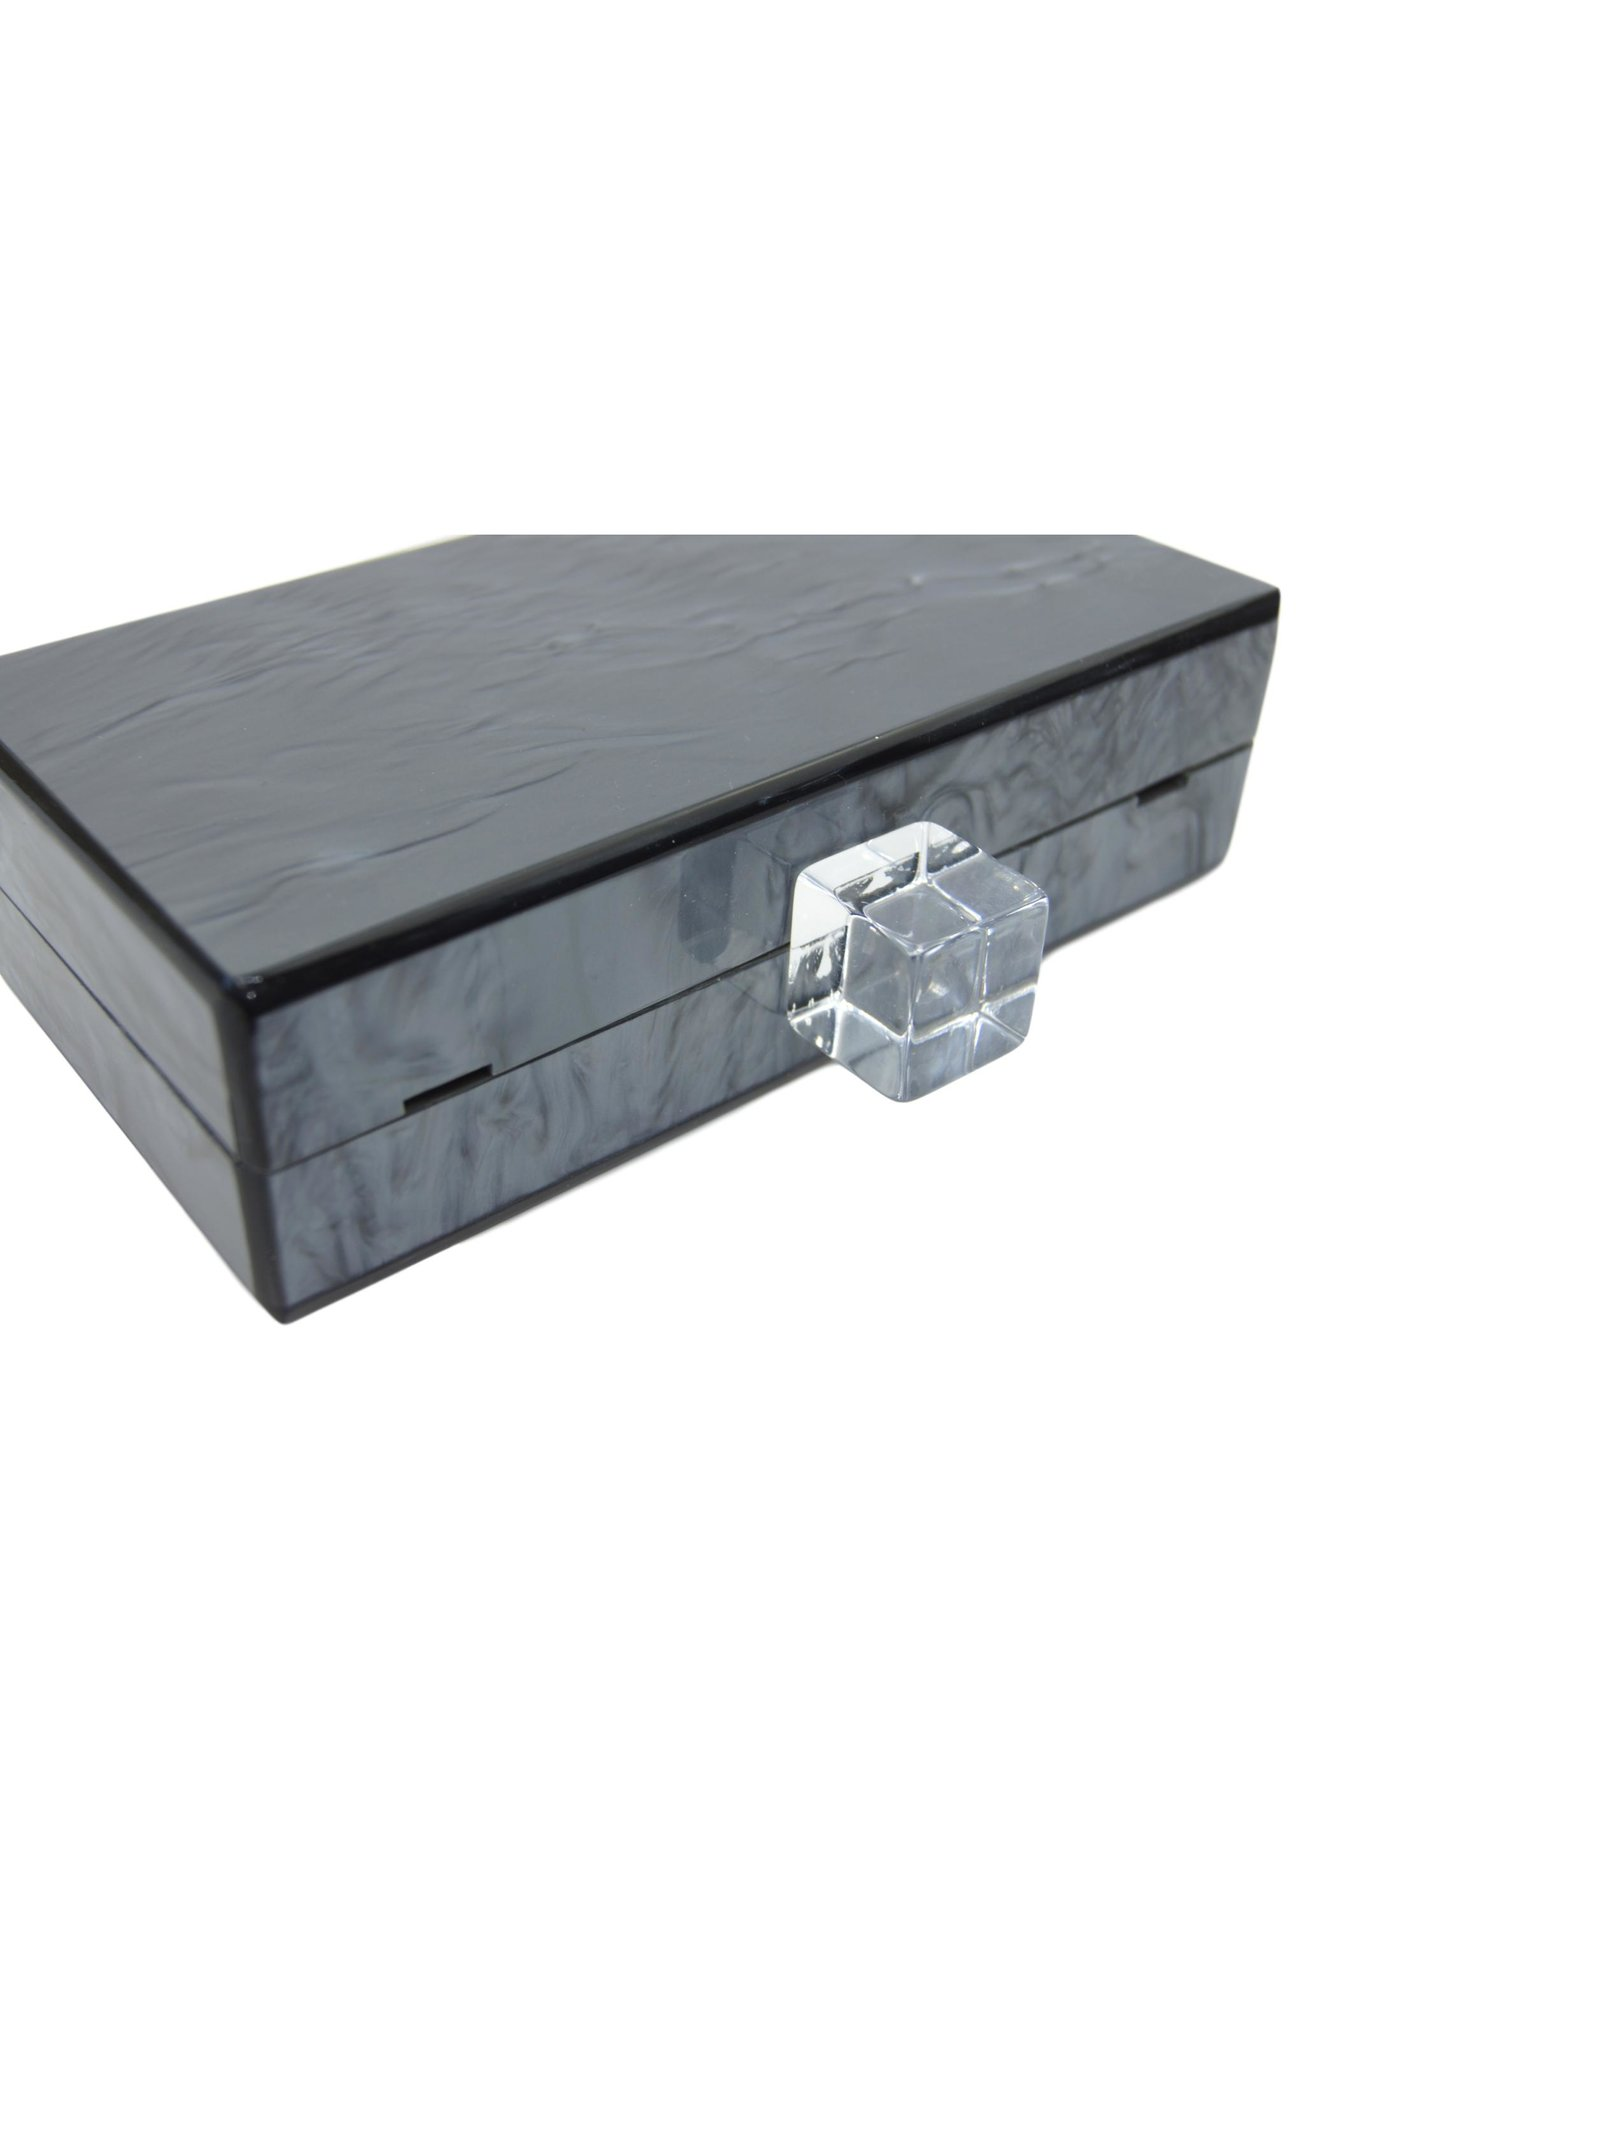 Milanblocks Metallic Charcoal Acrylic Box Clutch